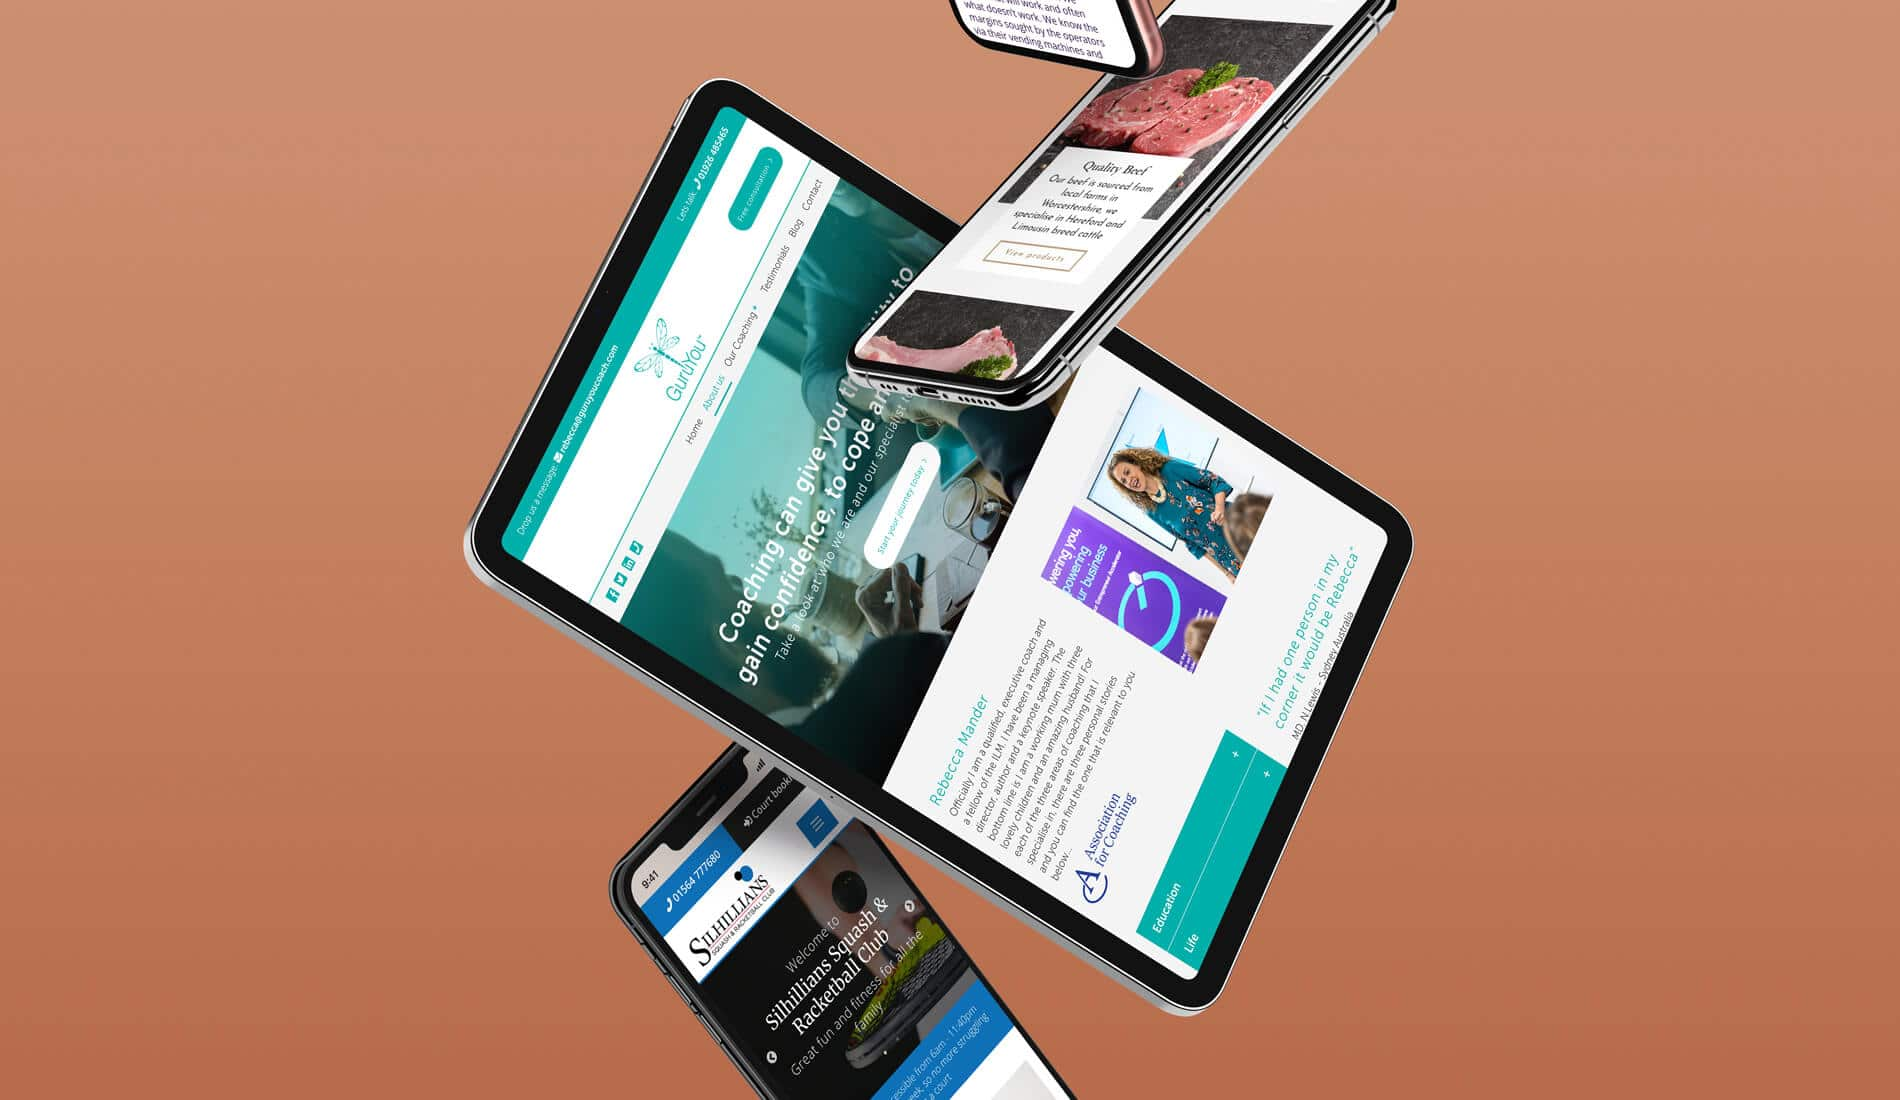 Responsive websites designed on digital devices